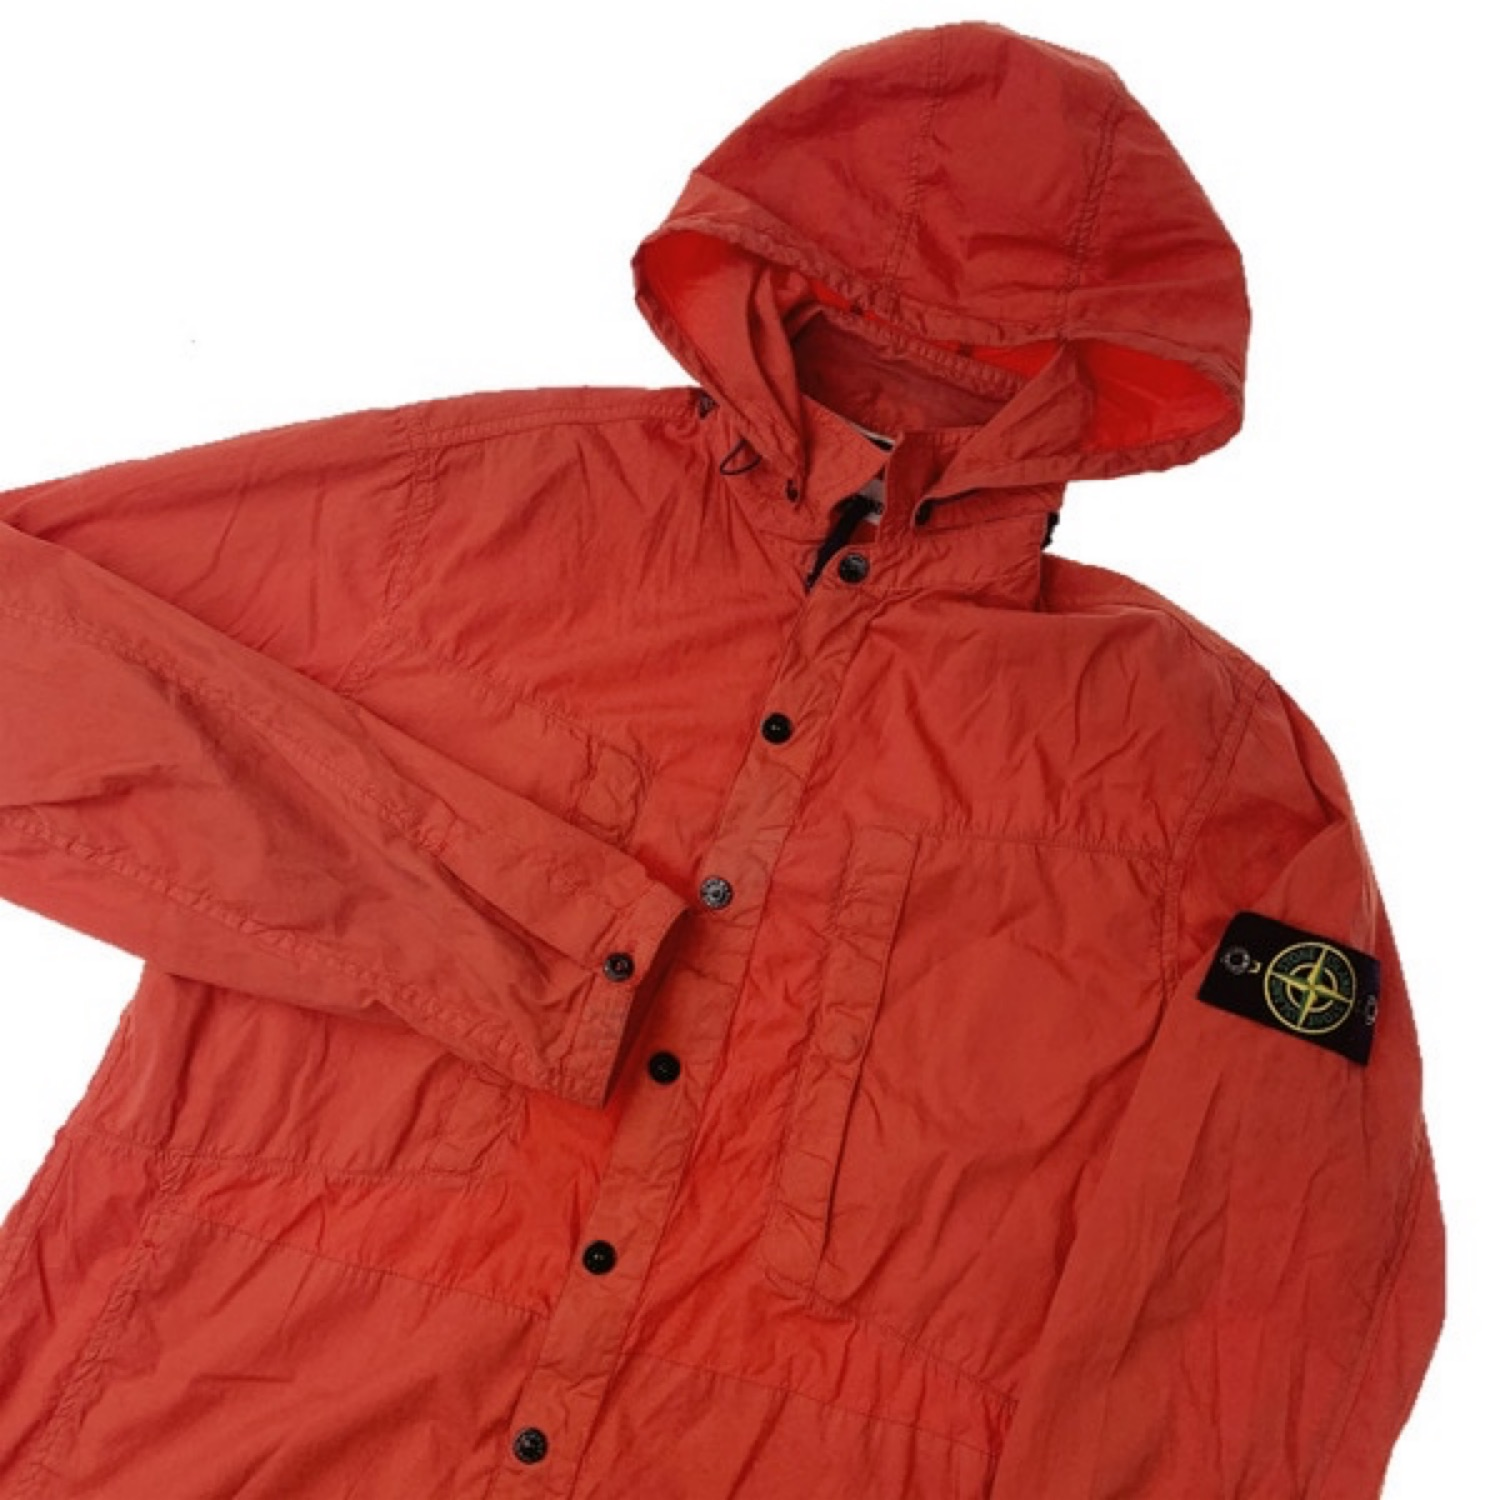 Stone Island S/S 12 Orange Hooded Overshirt